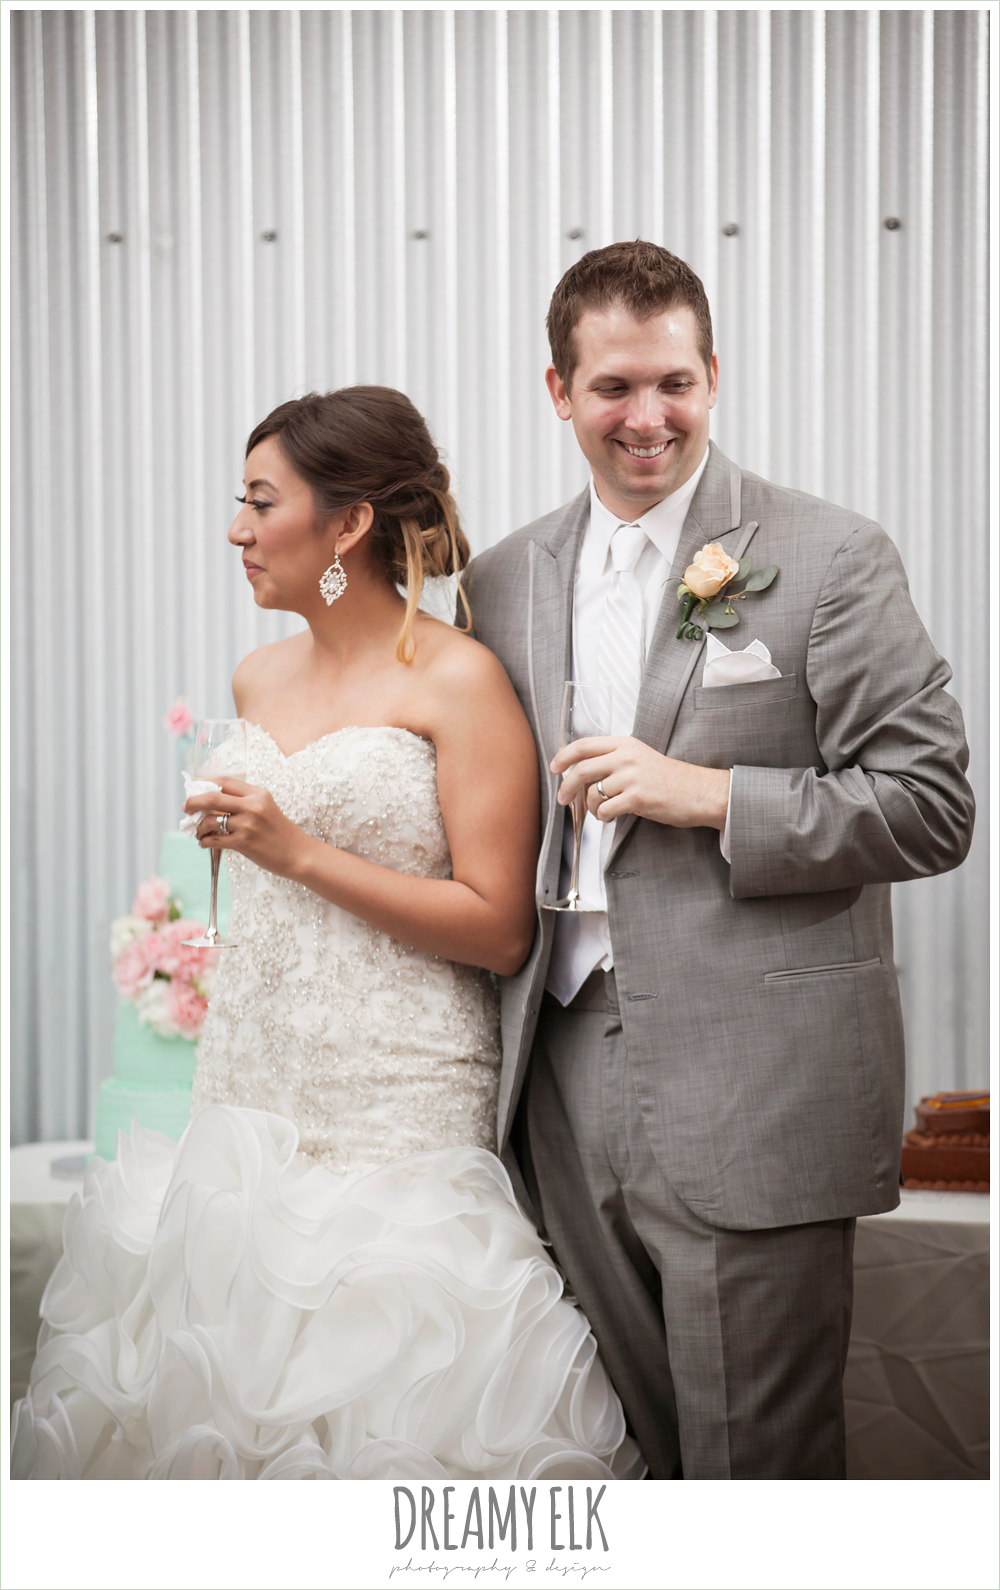 sweetheart strapless beaded wedding dress, groom in gray suit, terradorna wedding venue, austin spring wedding {dreamy elk photography and design}